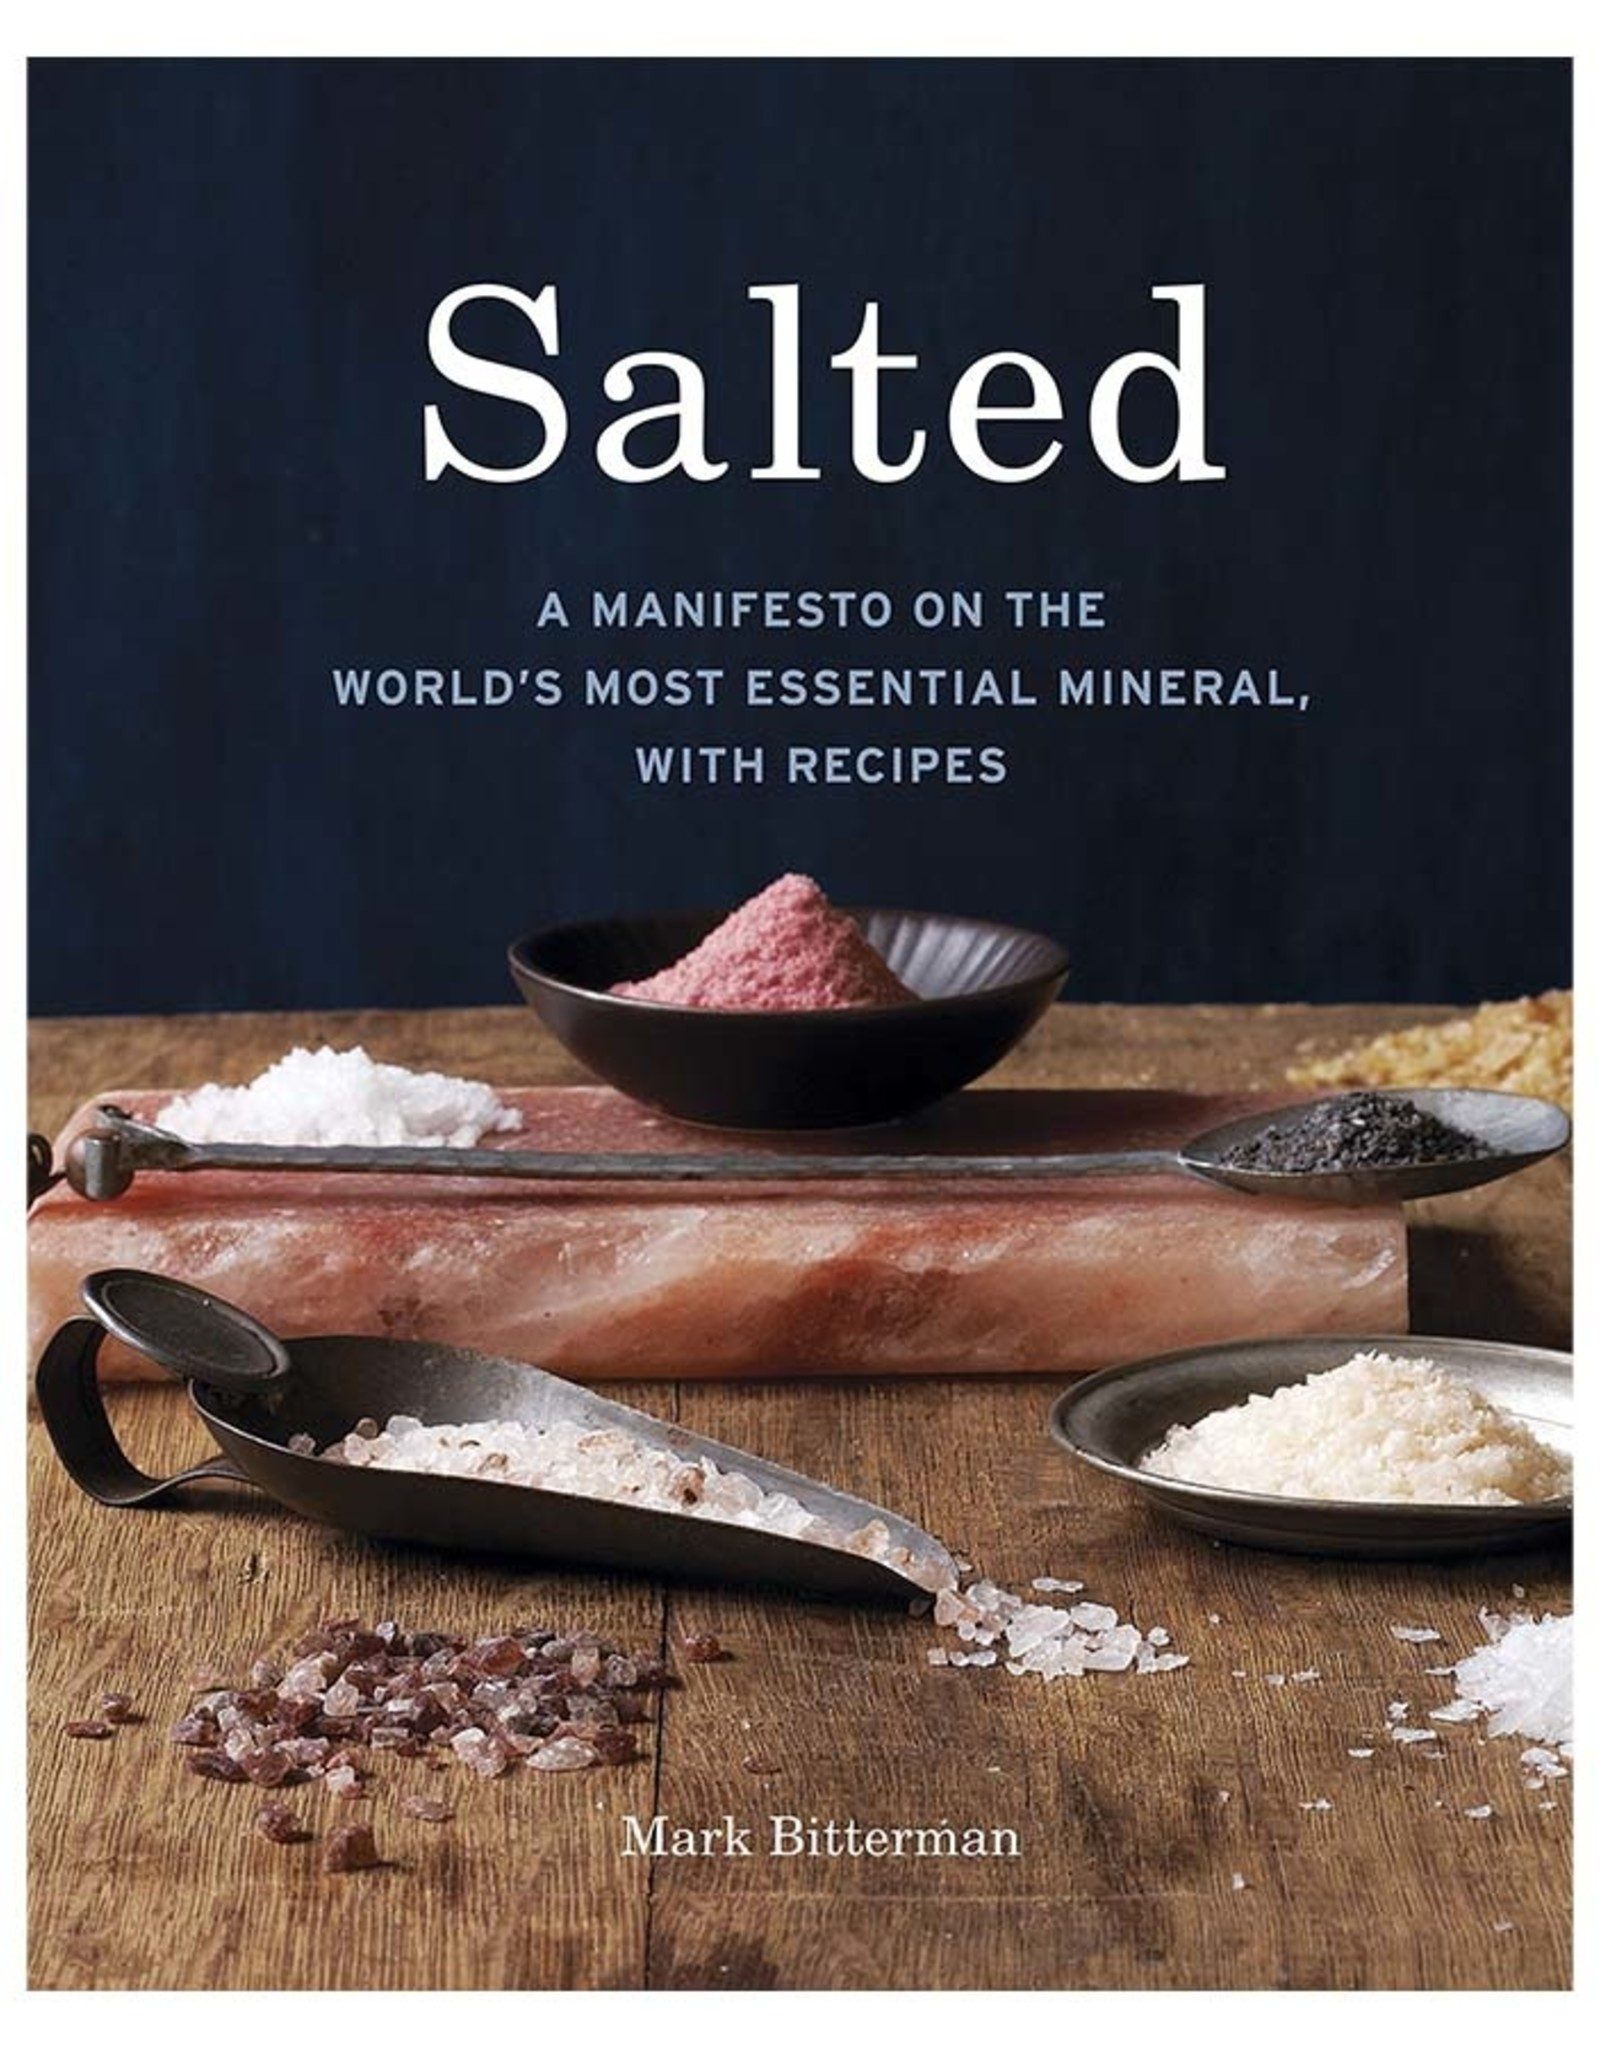 Salted: A Manifesto on the Worlds Most Essential Mineral